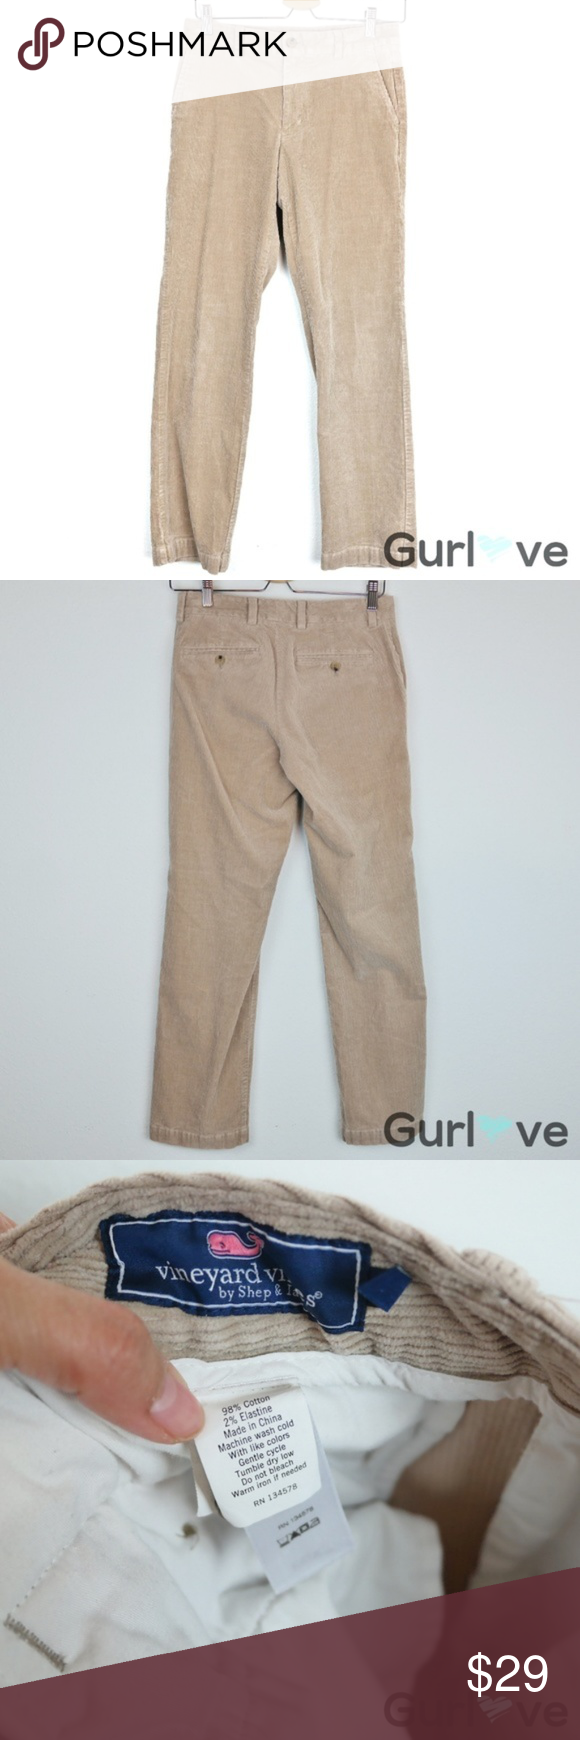 Vineyard Vines Tan Slim Corduroy Pants 28 x30 Brand: Vineyard Vines  Size: 28 x 30  Condition: Gently used  Details: Style 1P0217  Approximate Measurements:  Inseam: 30